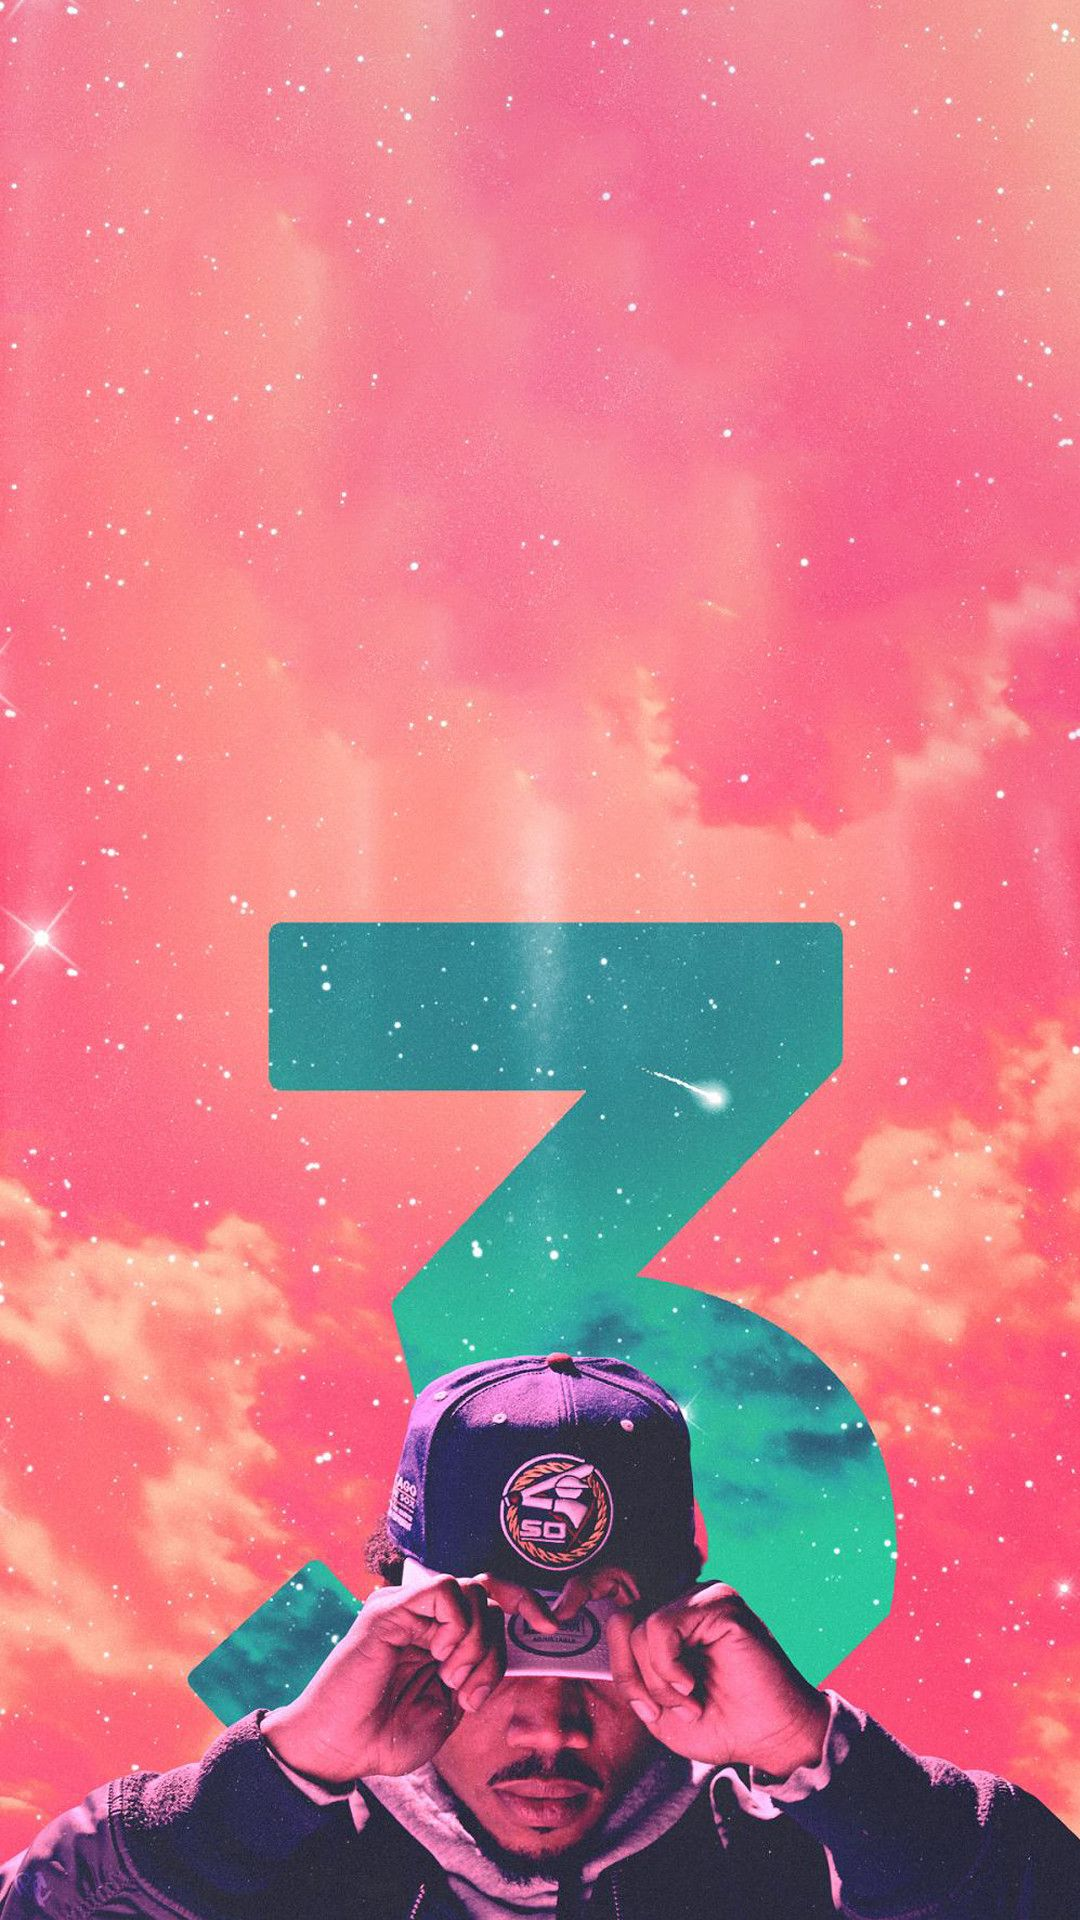 Lil Uzi Vert Iphone Wallpapers Top Free Lil Uzi Vert Iphone Backgrounds Wallpaperaccess Check out this fantastic collection of lil uzi vert wallpapers, with 36 lil uzi vert background images for your desktop, phone or tablet. lil uzi vert iphone wallpapers top